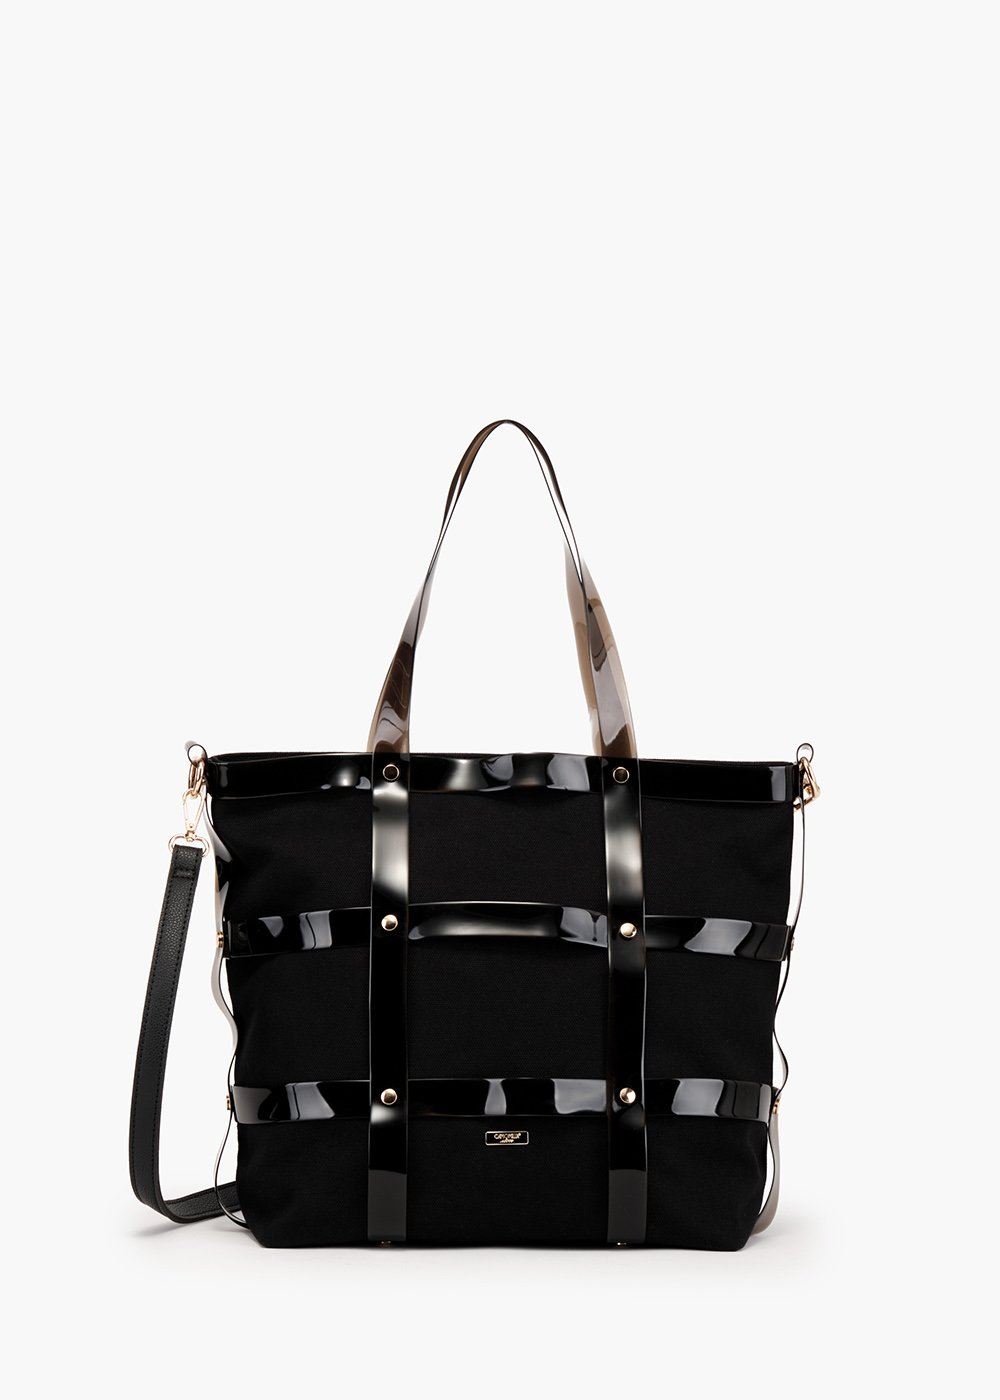 Beyon shopping bag cage model in canvas and vinyl - Black - Woman